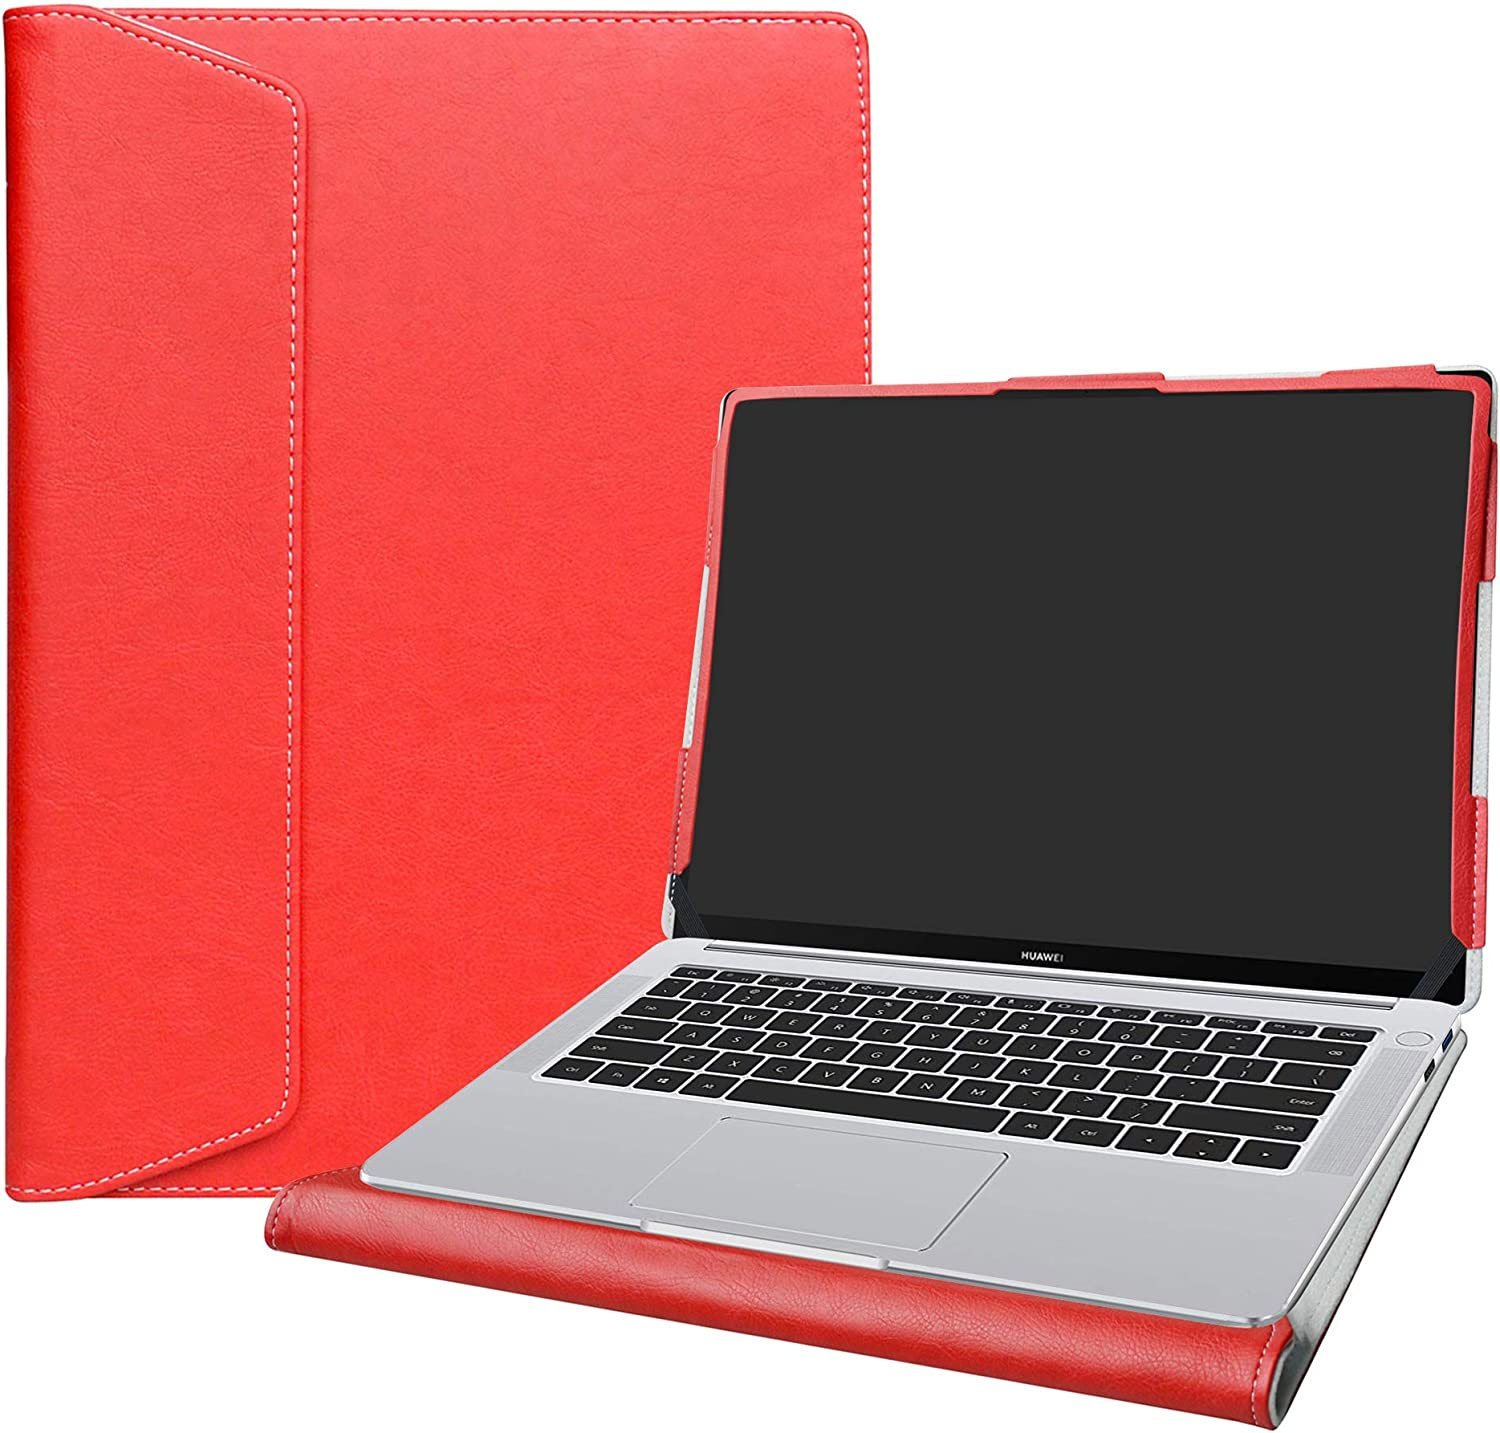 """Alapmk Protective Case Cover for 14"""" HP ProBook x360 435 G7 & Huawei Matebook 14 2019/Huawei Matebook 14 2020 Laptop(Not fit Matebook X/Matebook D/Matebook X Pro/Matebook 13),Red"""